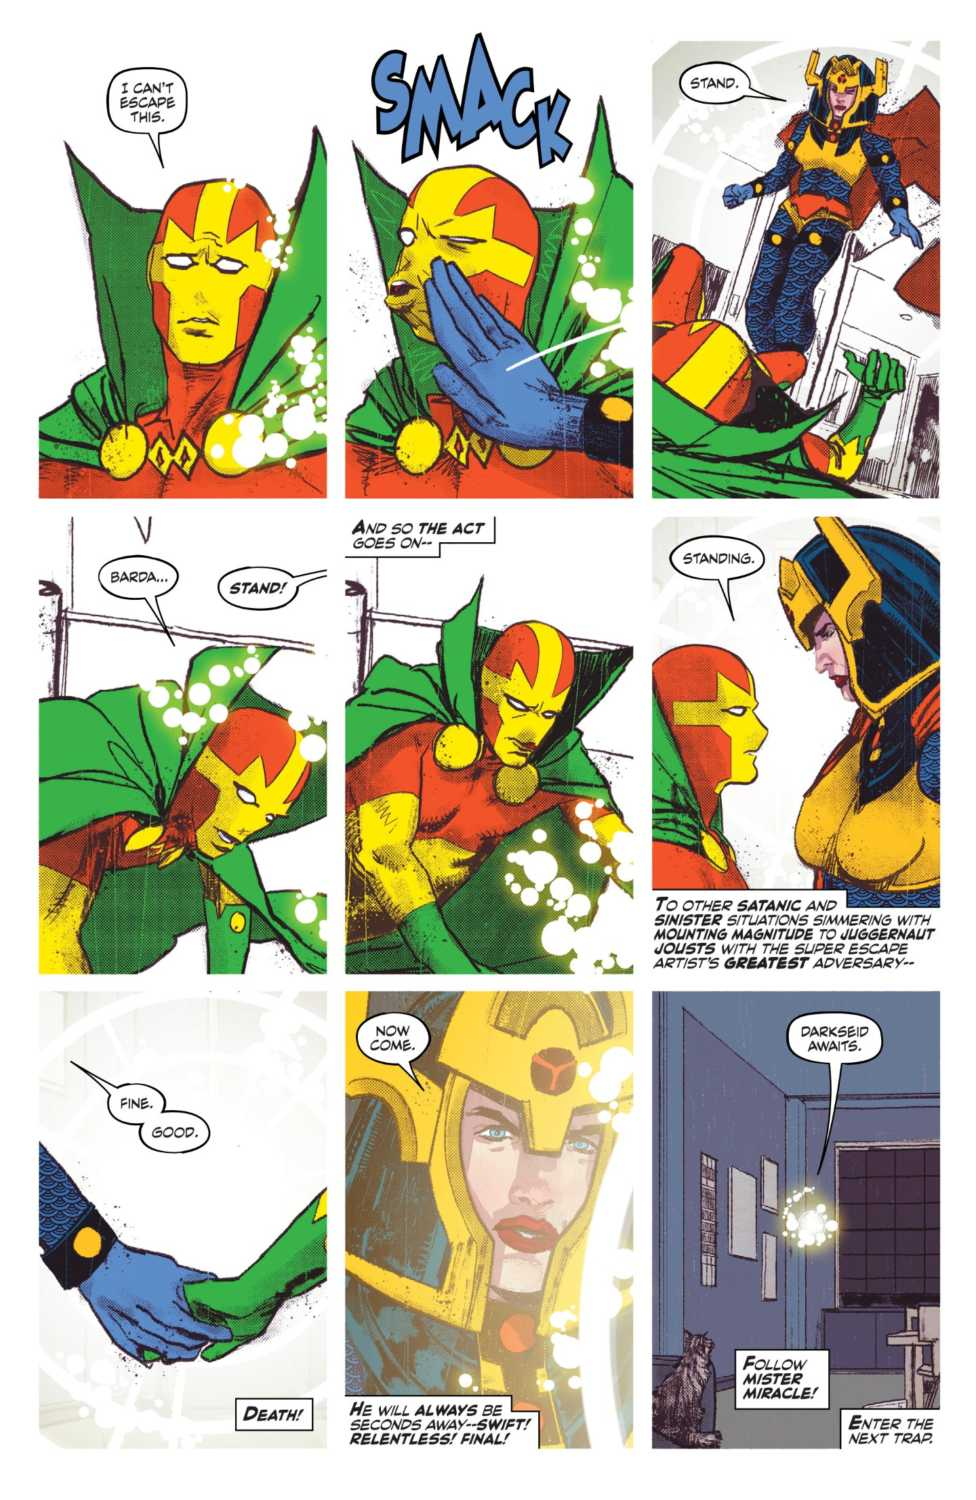 mister miracle big barda dc comics tom king mitch gerads